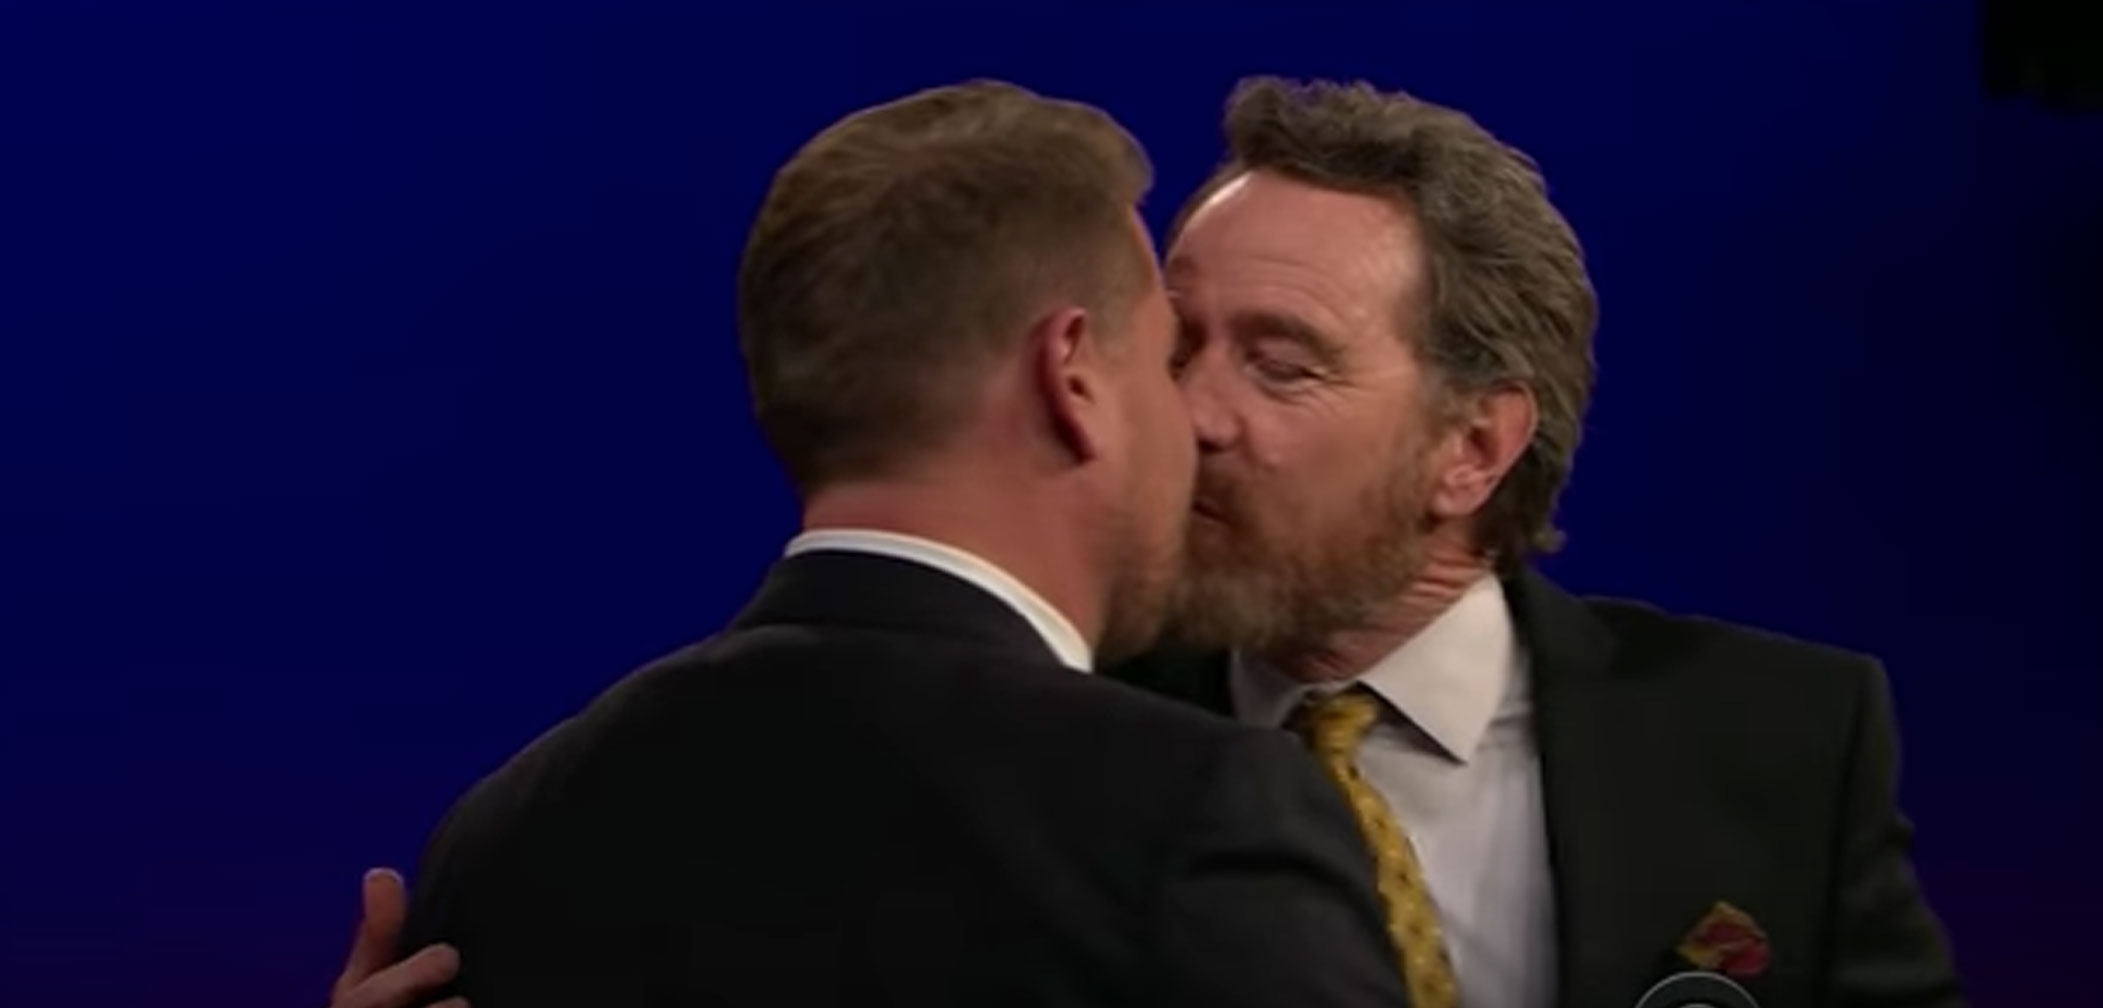 James Corden and Bryan Cranston Jump Aboard the 'Straight Dudes Kissing' Train